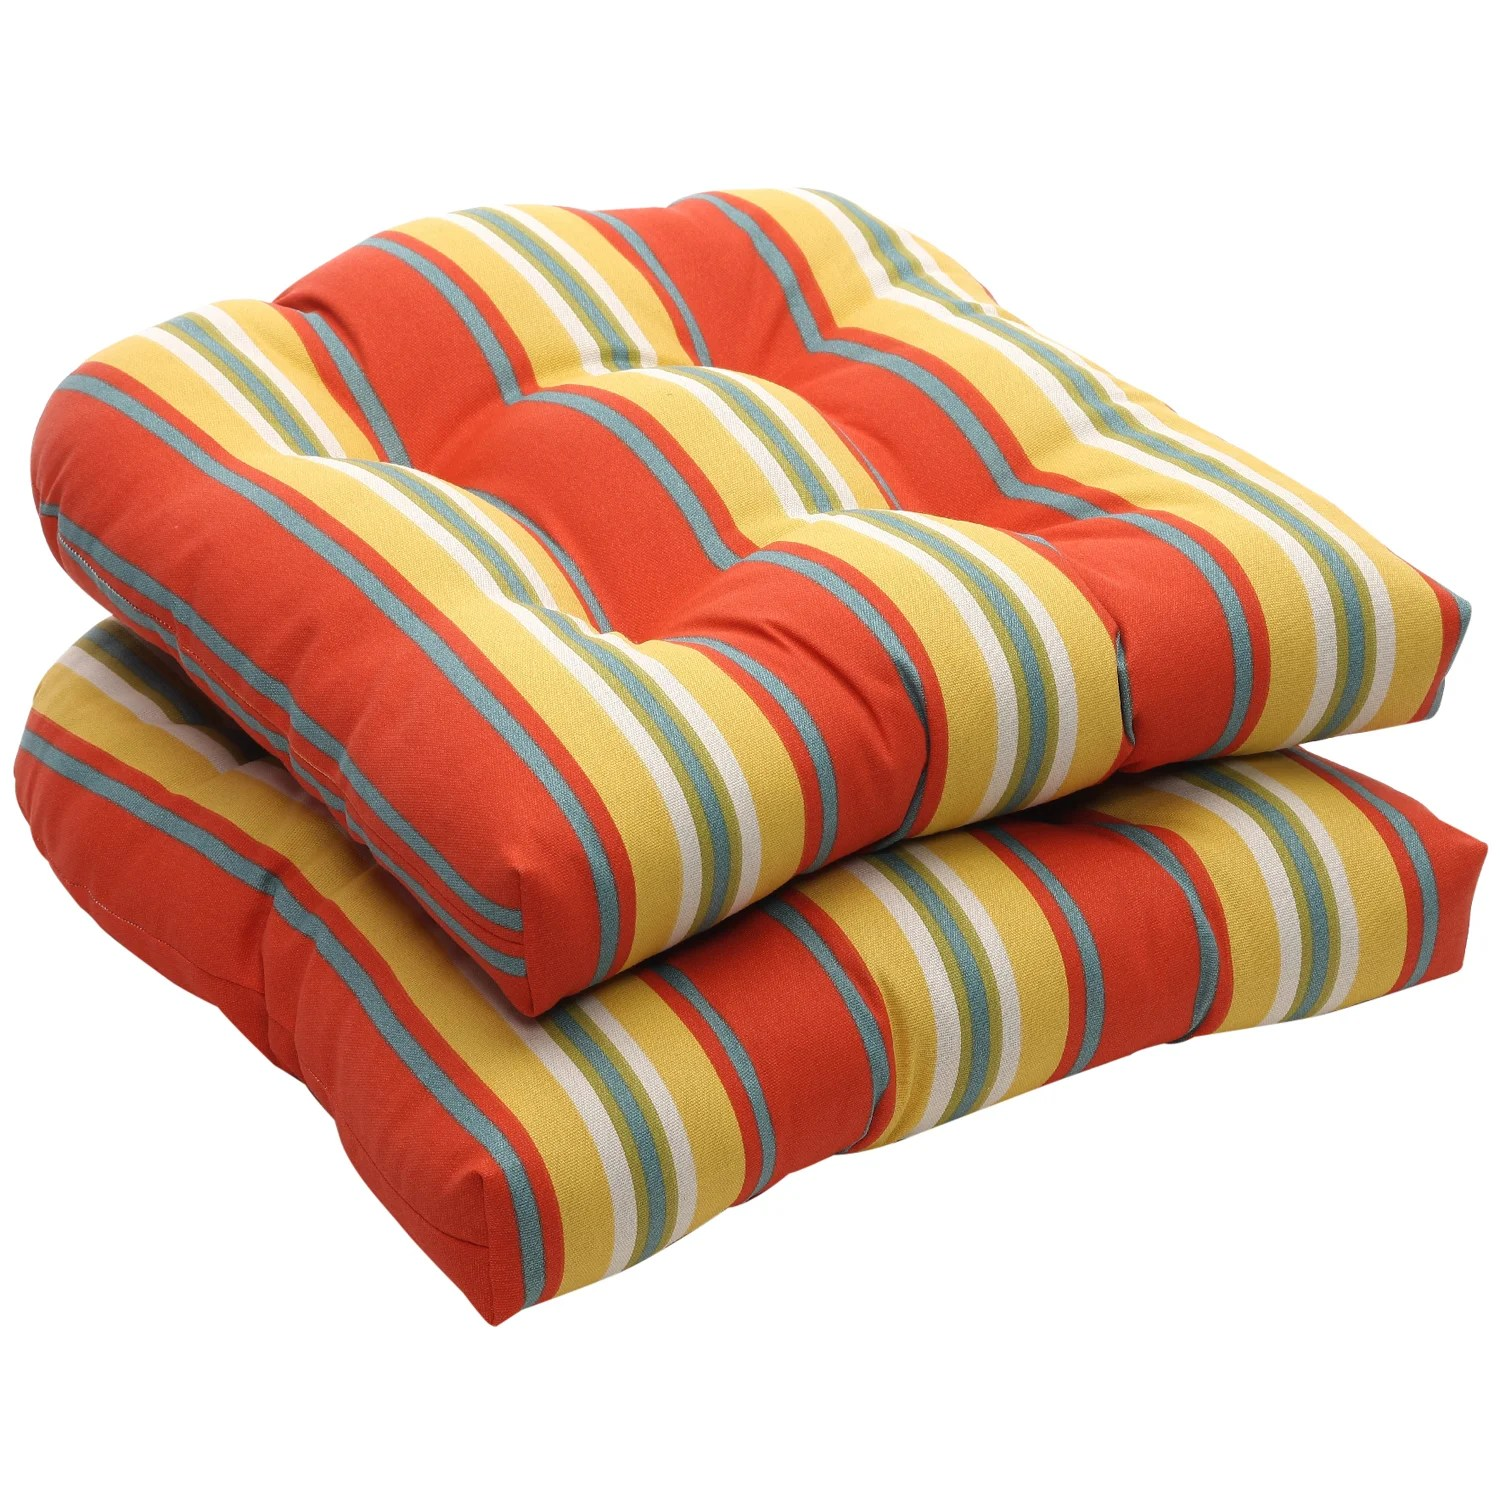 orange wicker chair cushions bedside commode outdoor and yellow stripe seat set